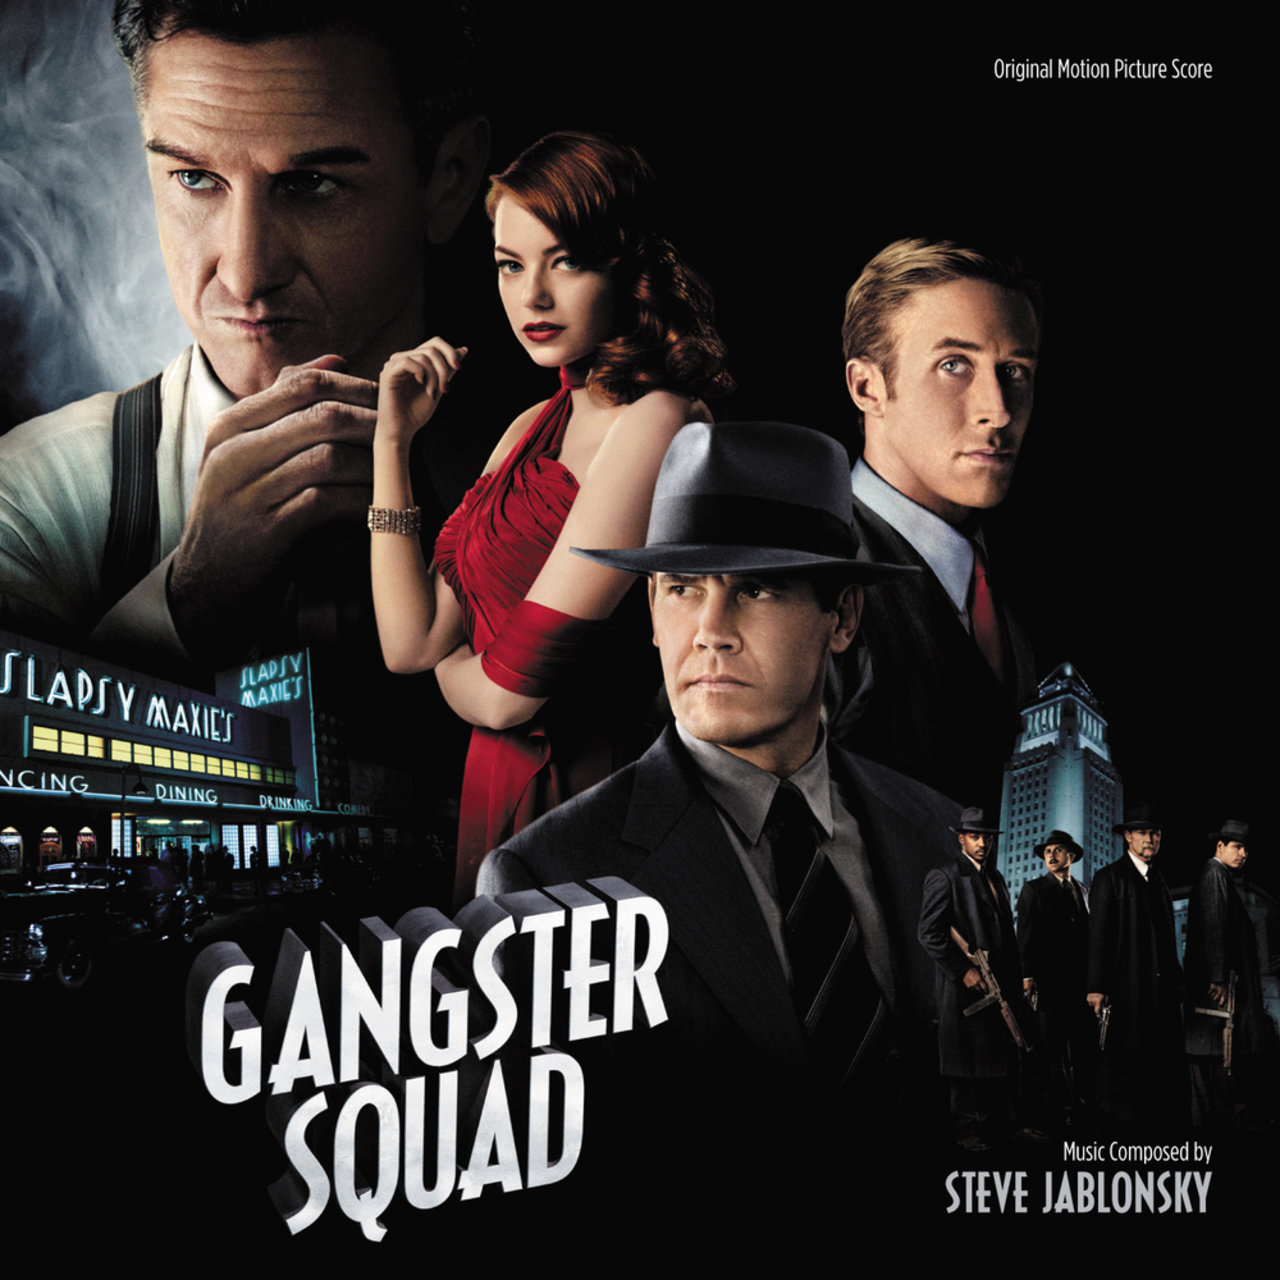 Gangster Squad (Original Motion Picture Score)